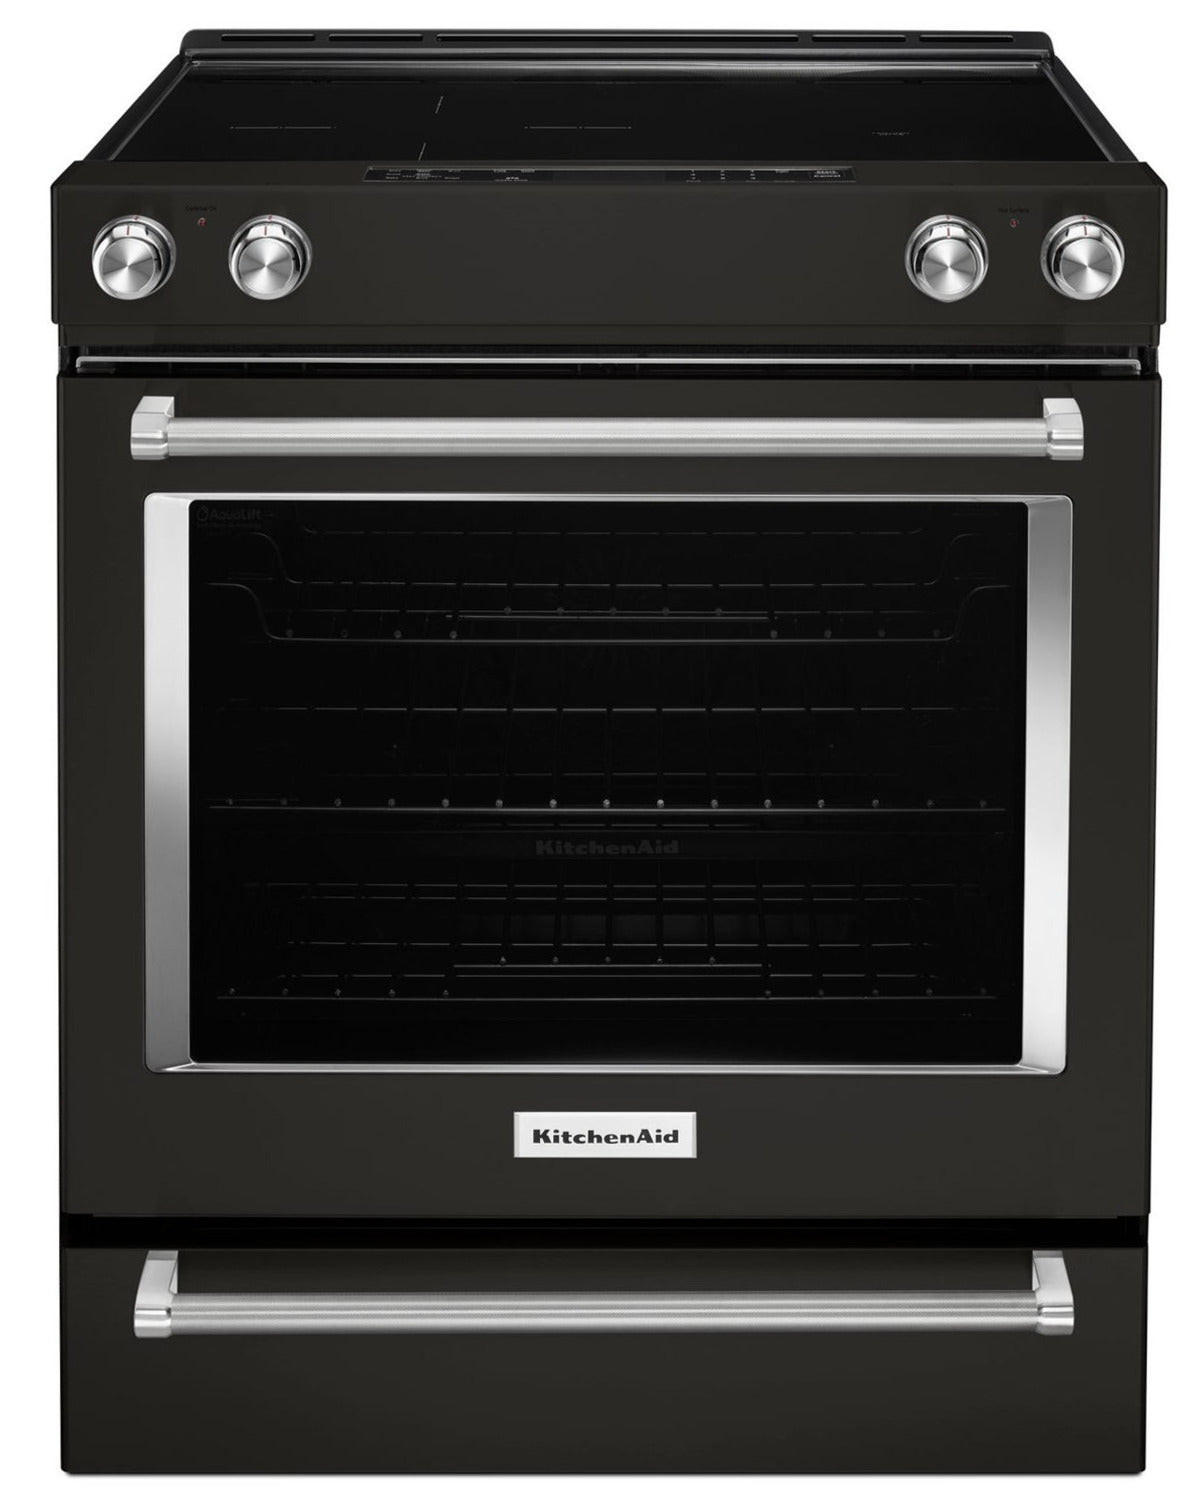 """KitchenAid Black Stainless Steel Slide-In Electric Convection Range on hoover electric ranges, full stainless steel electric ranges, miele electric ranges, jenn-air electric ranges, magic chef electric ranges, kitchenaid professional ranges, sub-zero electric ranges, cleaning smooth top electric ranges, haier electric ranges, kitchenaid pro style ranges, sears electric ranges, lowe's kitchen appliances ranges, hotpoint electric ranges, inglis electric ranges, speed queen electric ranges, best electric ranges, general electric electric ranges, danby electric ranges, discontinued kitchenaid ranges, 30"""" freestanding ranges,"""